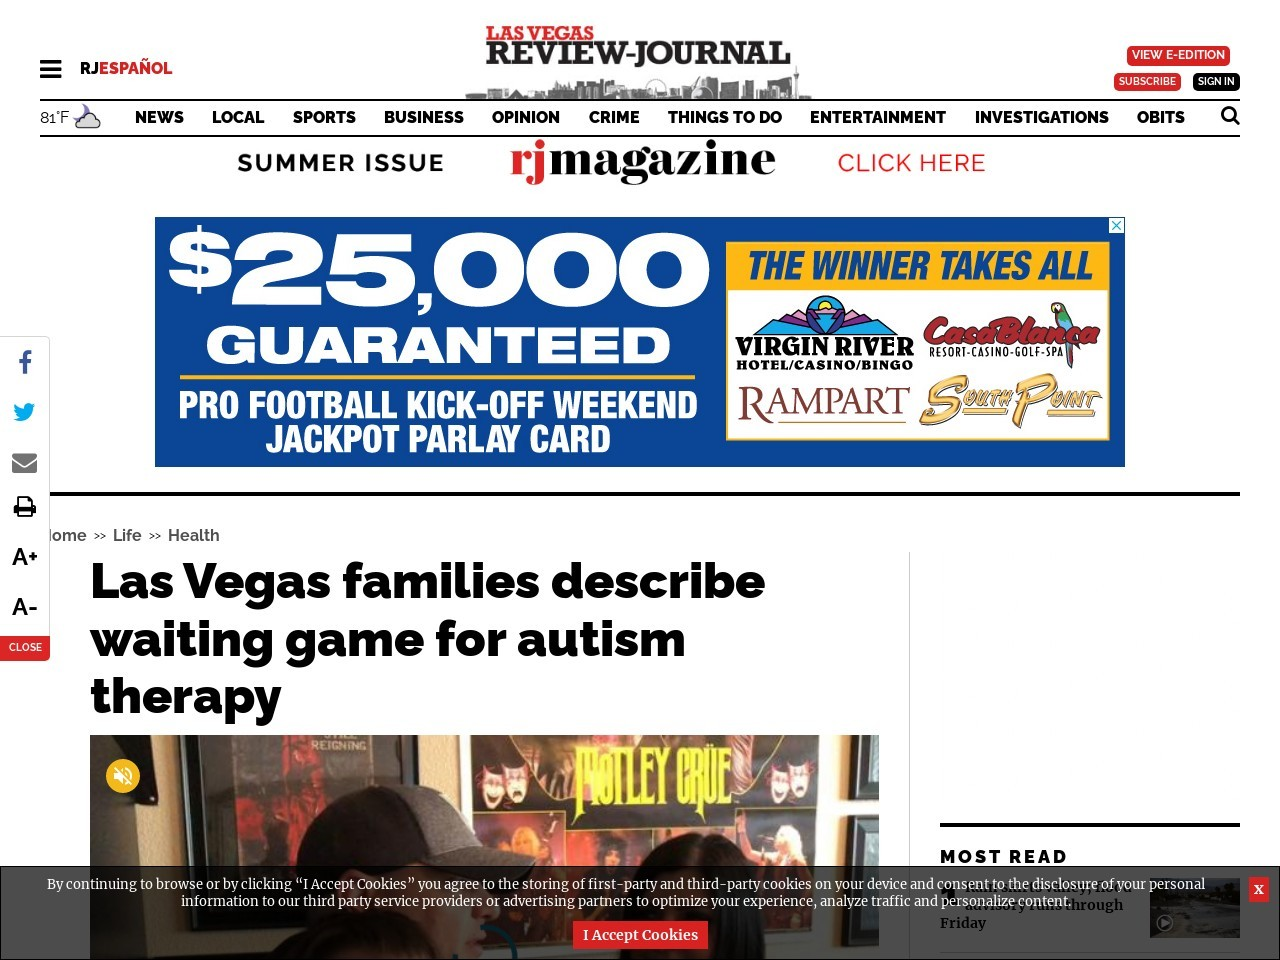 Las Vegas families describe waiting game for autism therapy